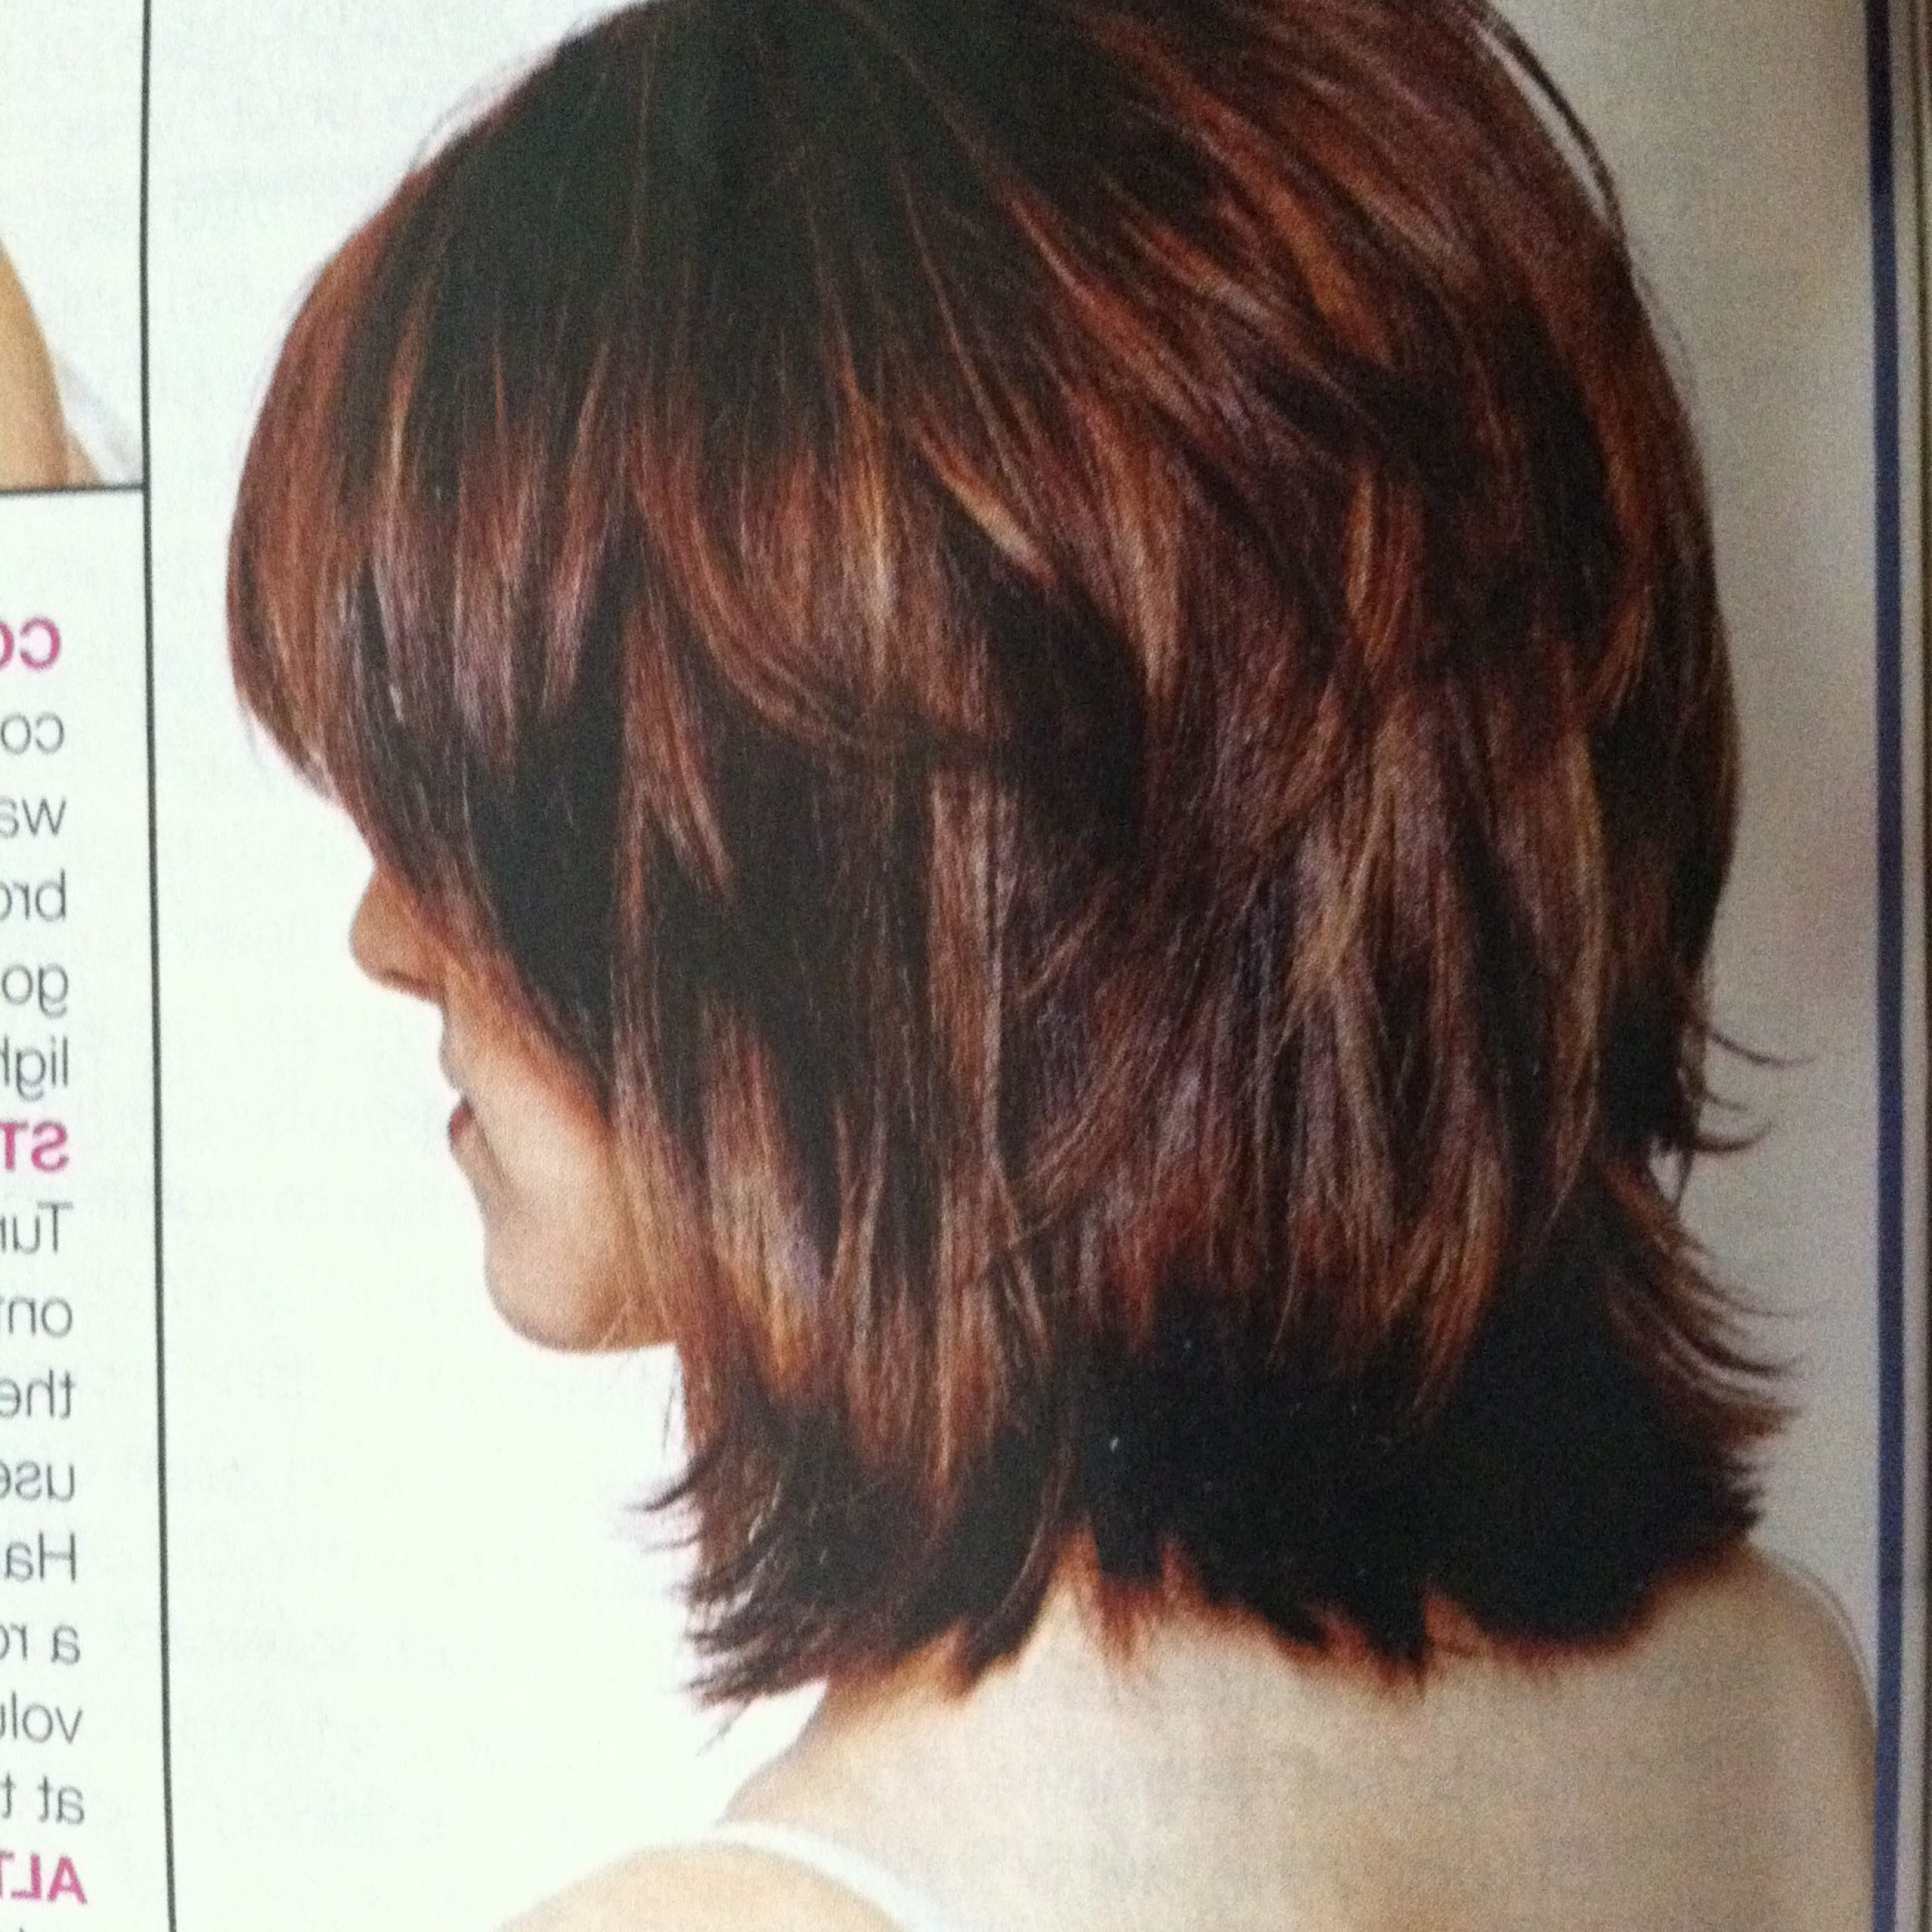 Pin On Girly Stuff Intended For Well Known Choppy Shag Hairstyles With Short Feathered Bangs (View 17 of 20)